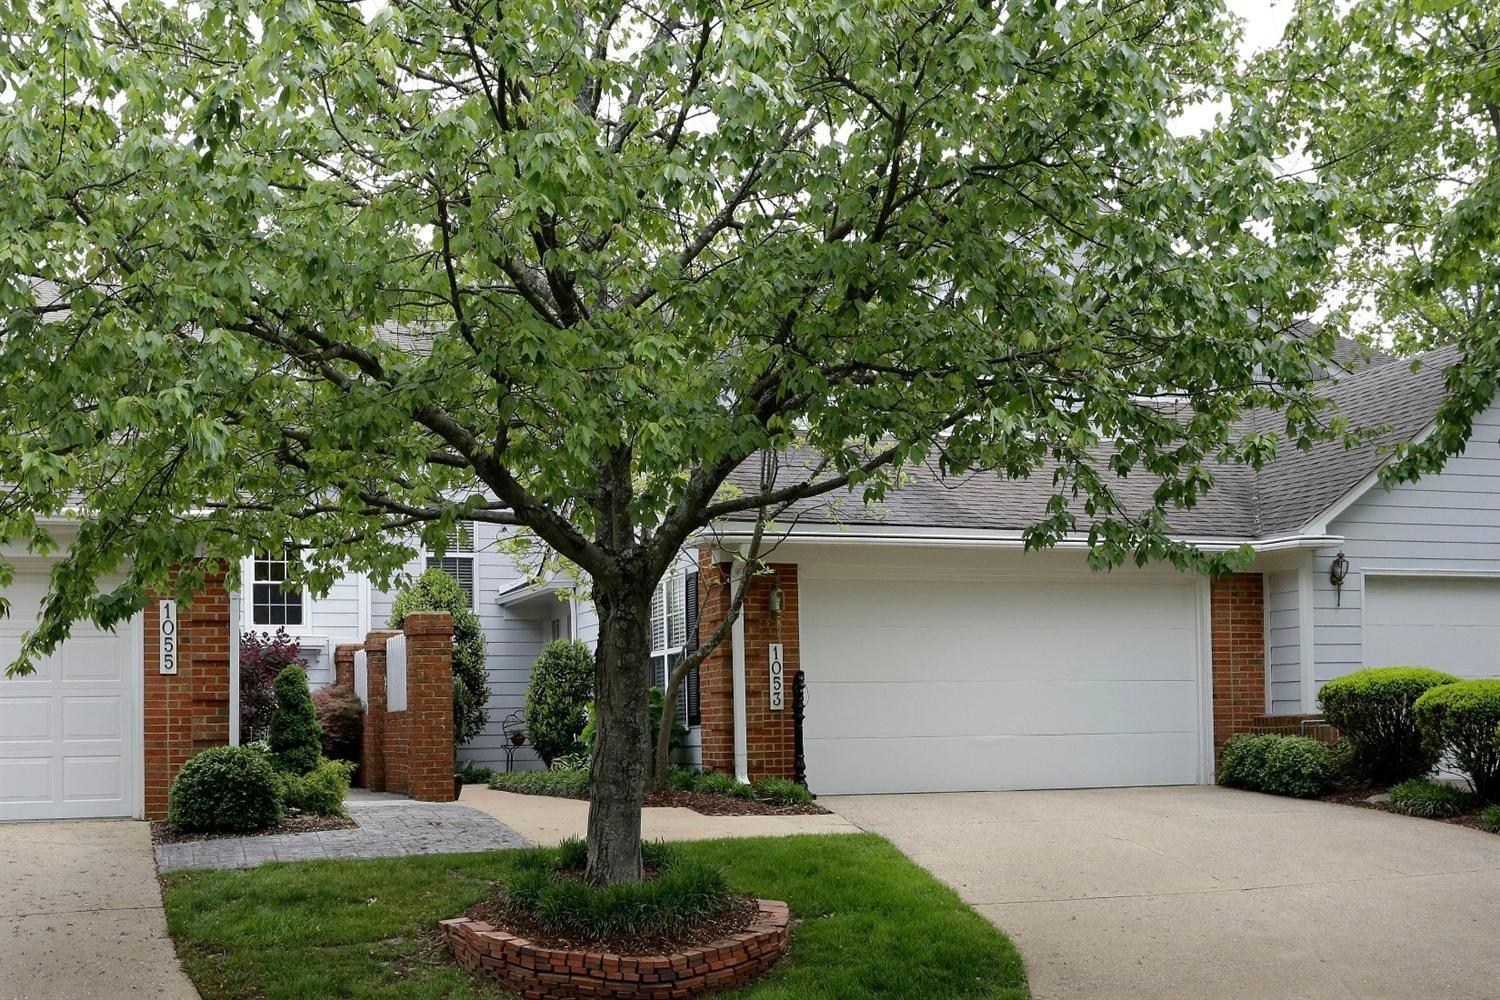 A%20wonderful%20location%20in%20Griffin%20Gate%20Community,%20Enjoy%20carefree%20living%20in%20a%20lovely,%20private%20setting.%20Tastefully%20updated%20townhome%20with%20a%20bright,%20open%20floor%20plan%20and%20a%20fresh%20neutral%20decor.%20Versatile%20Ashland%20model%20features%20two%20story%20great%20room%20and%20kitchen/gathering%20room%20with%20a%20two%20sided%20fireplace.%20Split%20bedroom%20design%20includes%20owners%20suite%20with%20vaulted%20ceiling,%20two%20large%20closets%20and%20a%20updated%20bath%20with%20a%20well%20designed%20walk%20in%20shower.%20Guest%20bedroom%20has%20vaulted%20ceiling,%20lots%20of%20natural%20light%20with%20adjoining%20bath.%20Wonderful%20outdoor%20space%20with%20front%20courtyard%20and%20paver%20brick%20back%20patio%20overlooking%20green%20space%20and%20perennial%20garden.